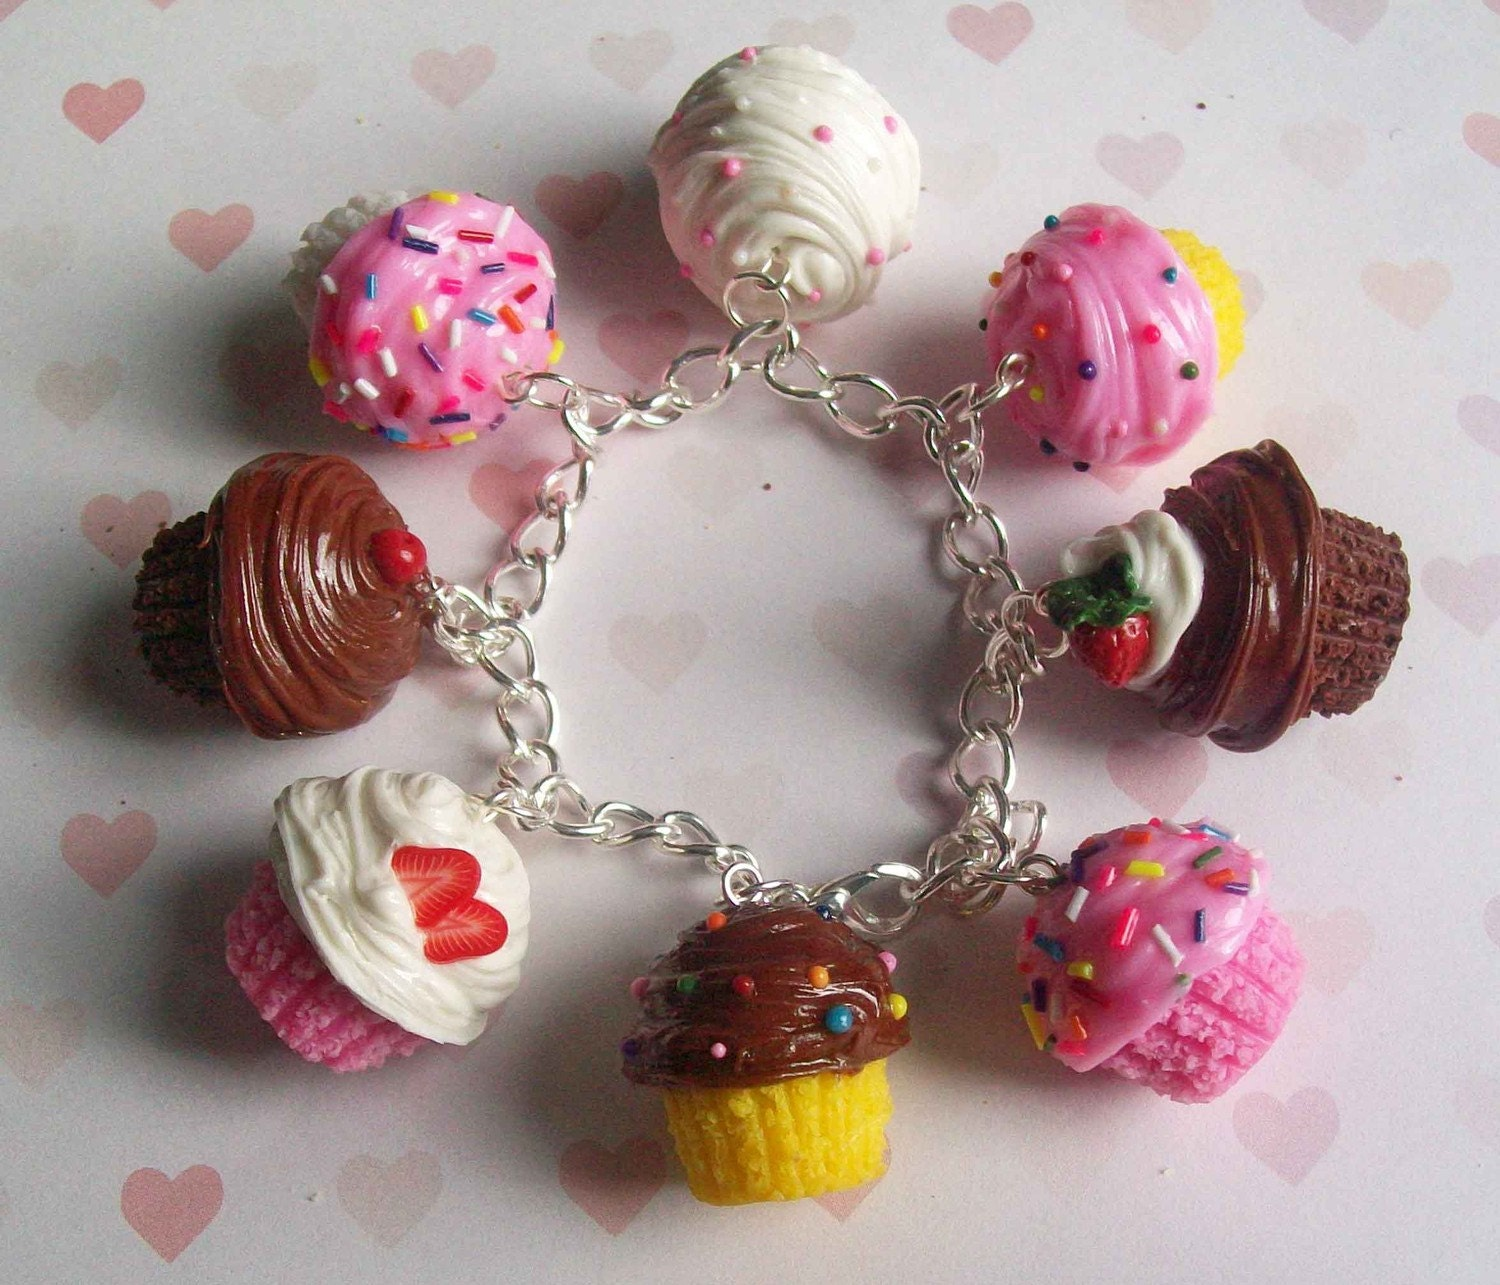 Polymer Clay Cupcake Charm Bracelet By ScrumptiousDoodle